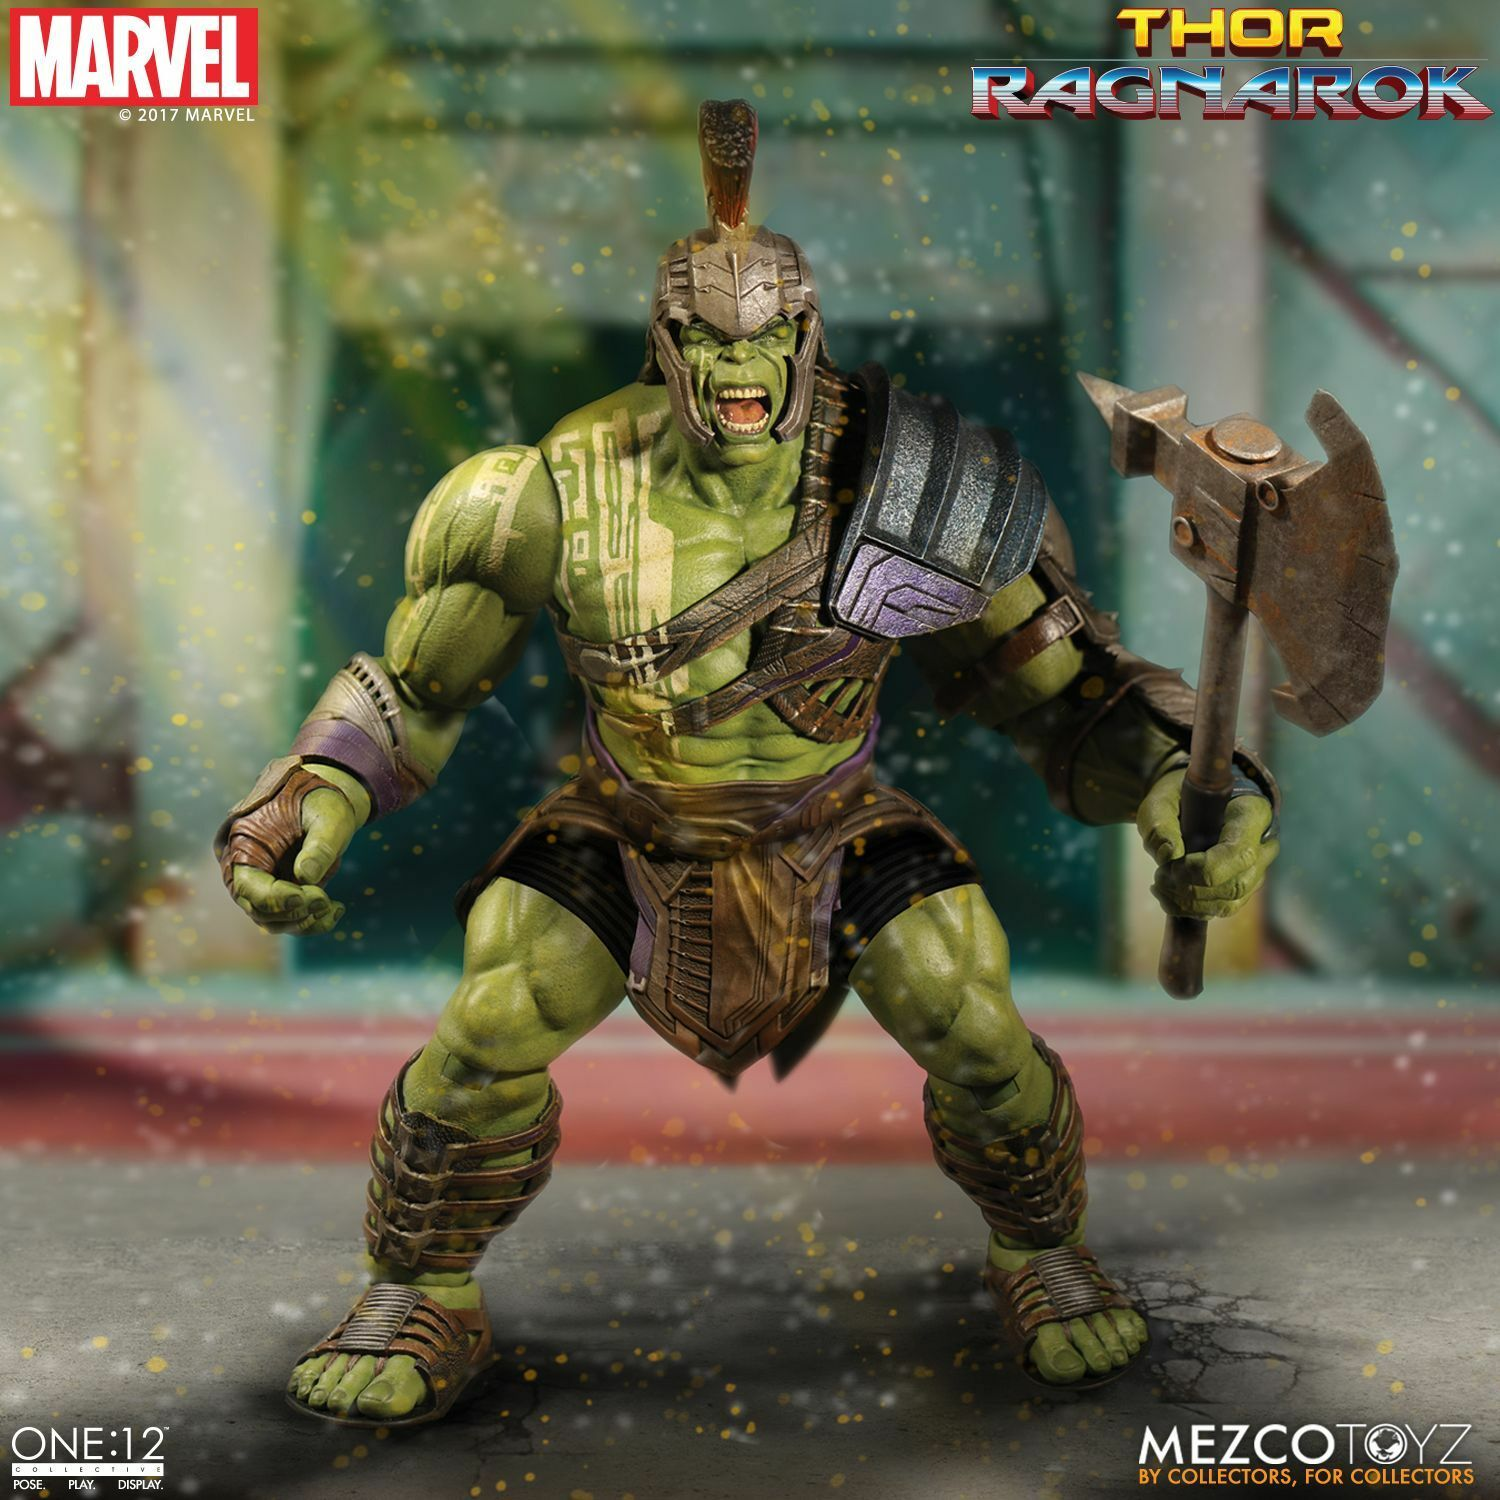 Mezco Toyz One 12 Collective Marvel Thor Ragnarok Gladiator Hulk 1 12 Figure